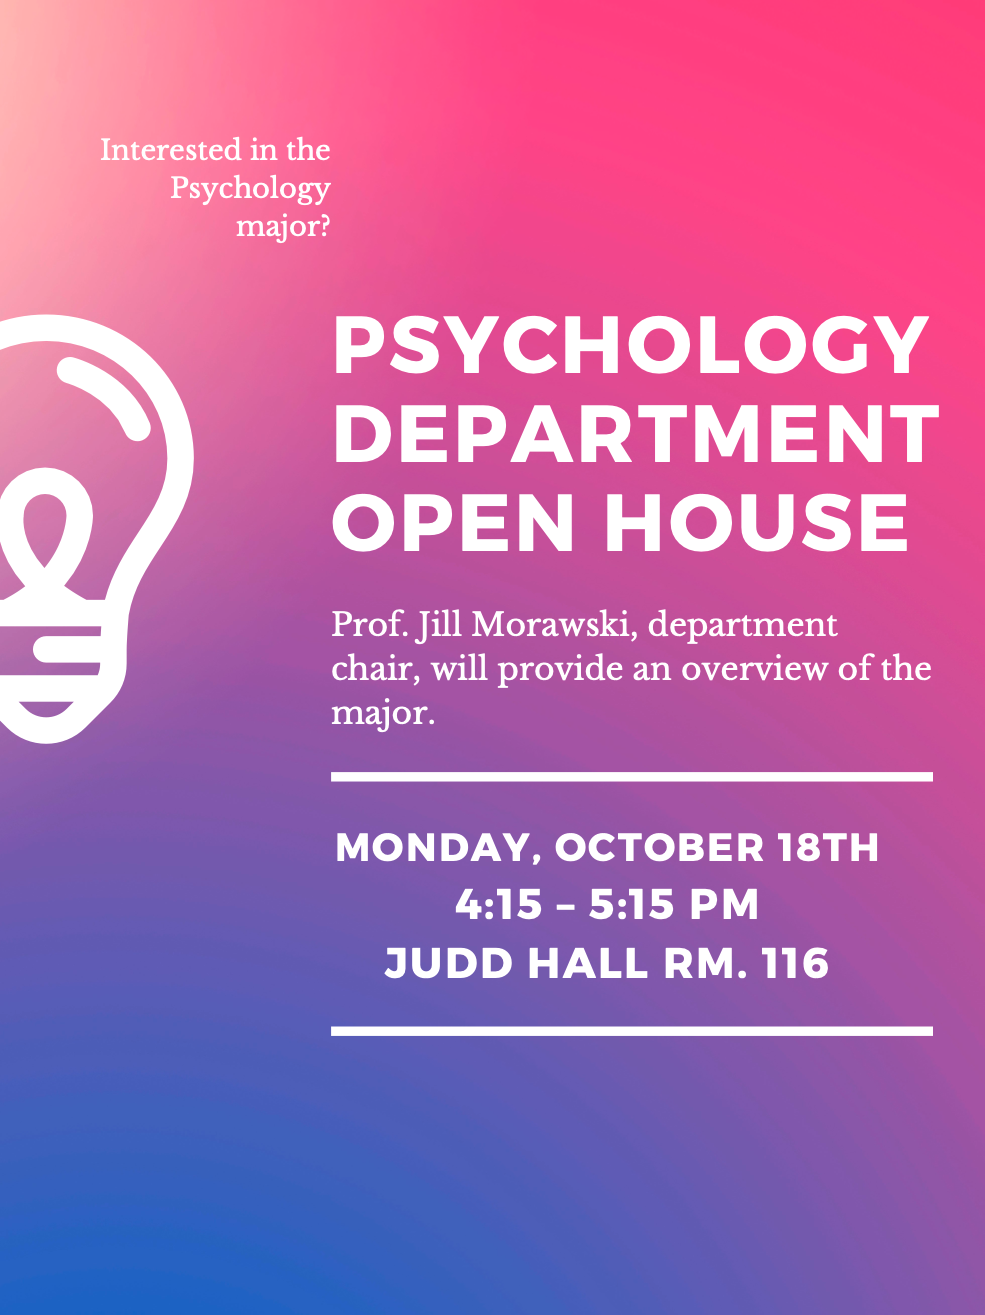 Psychology Department Open House. Monday, October 18, 4:15-5:15 pm Judd Hall Rm 116.  Professor Jill Moarawski, department chair, will provide an overview of the major